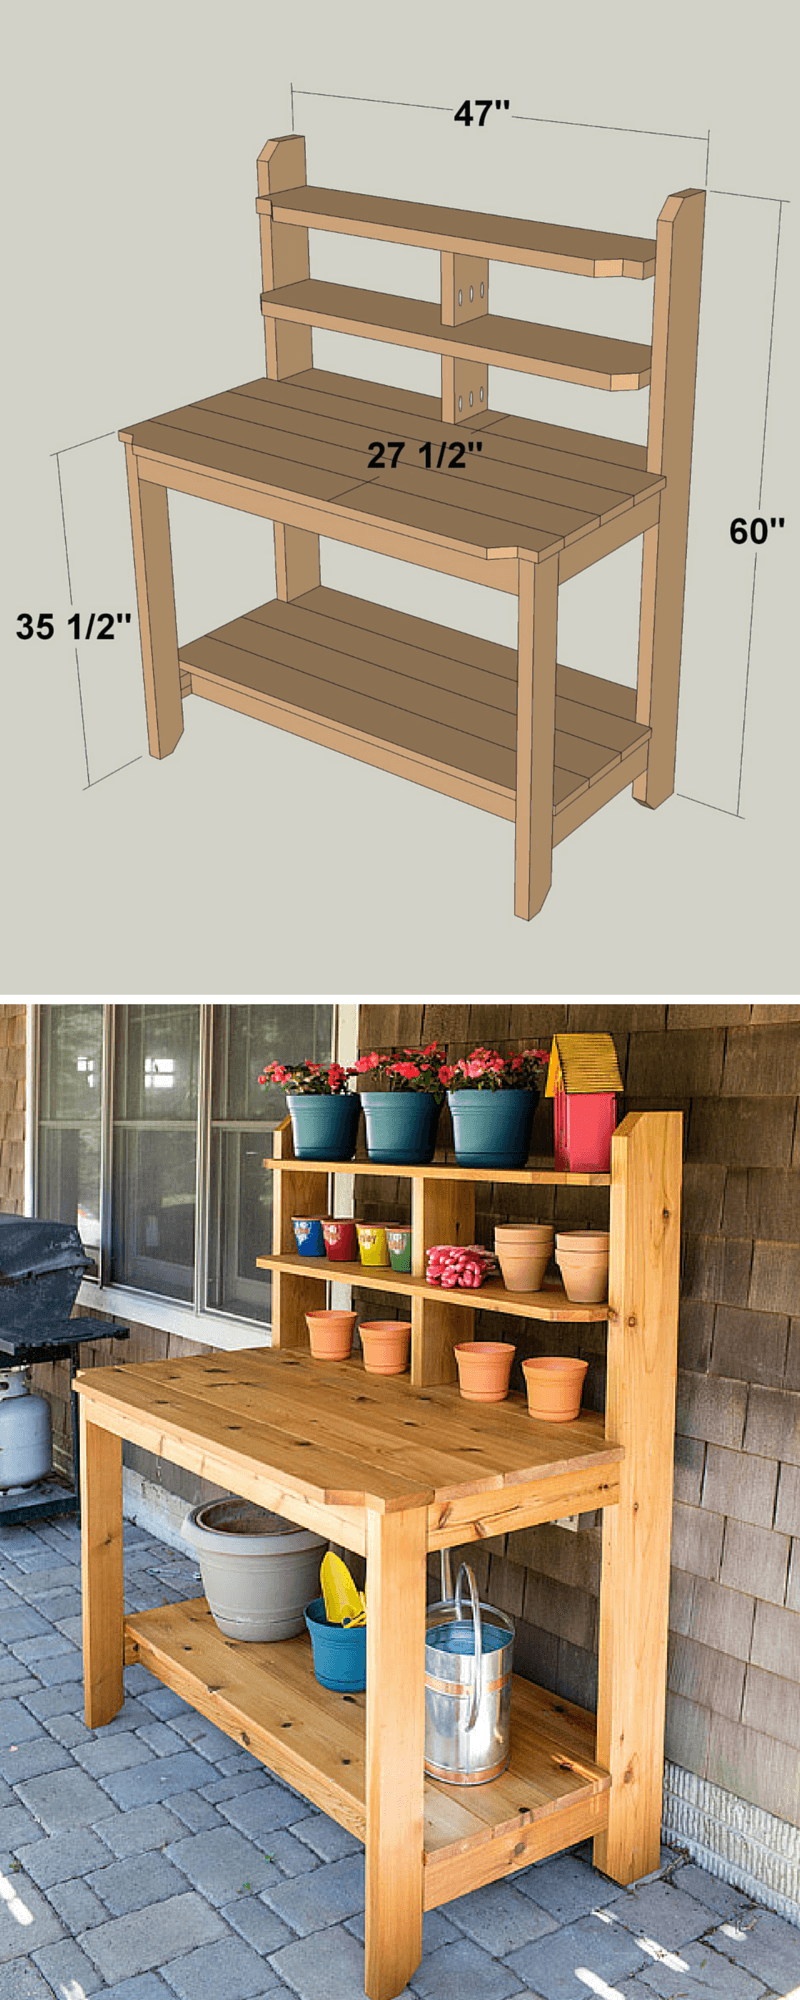 42 Best Diy Backyard Projects Ideas And Designs For 2019